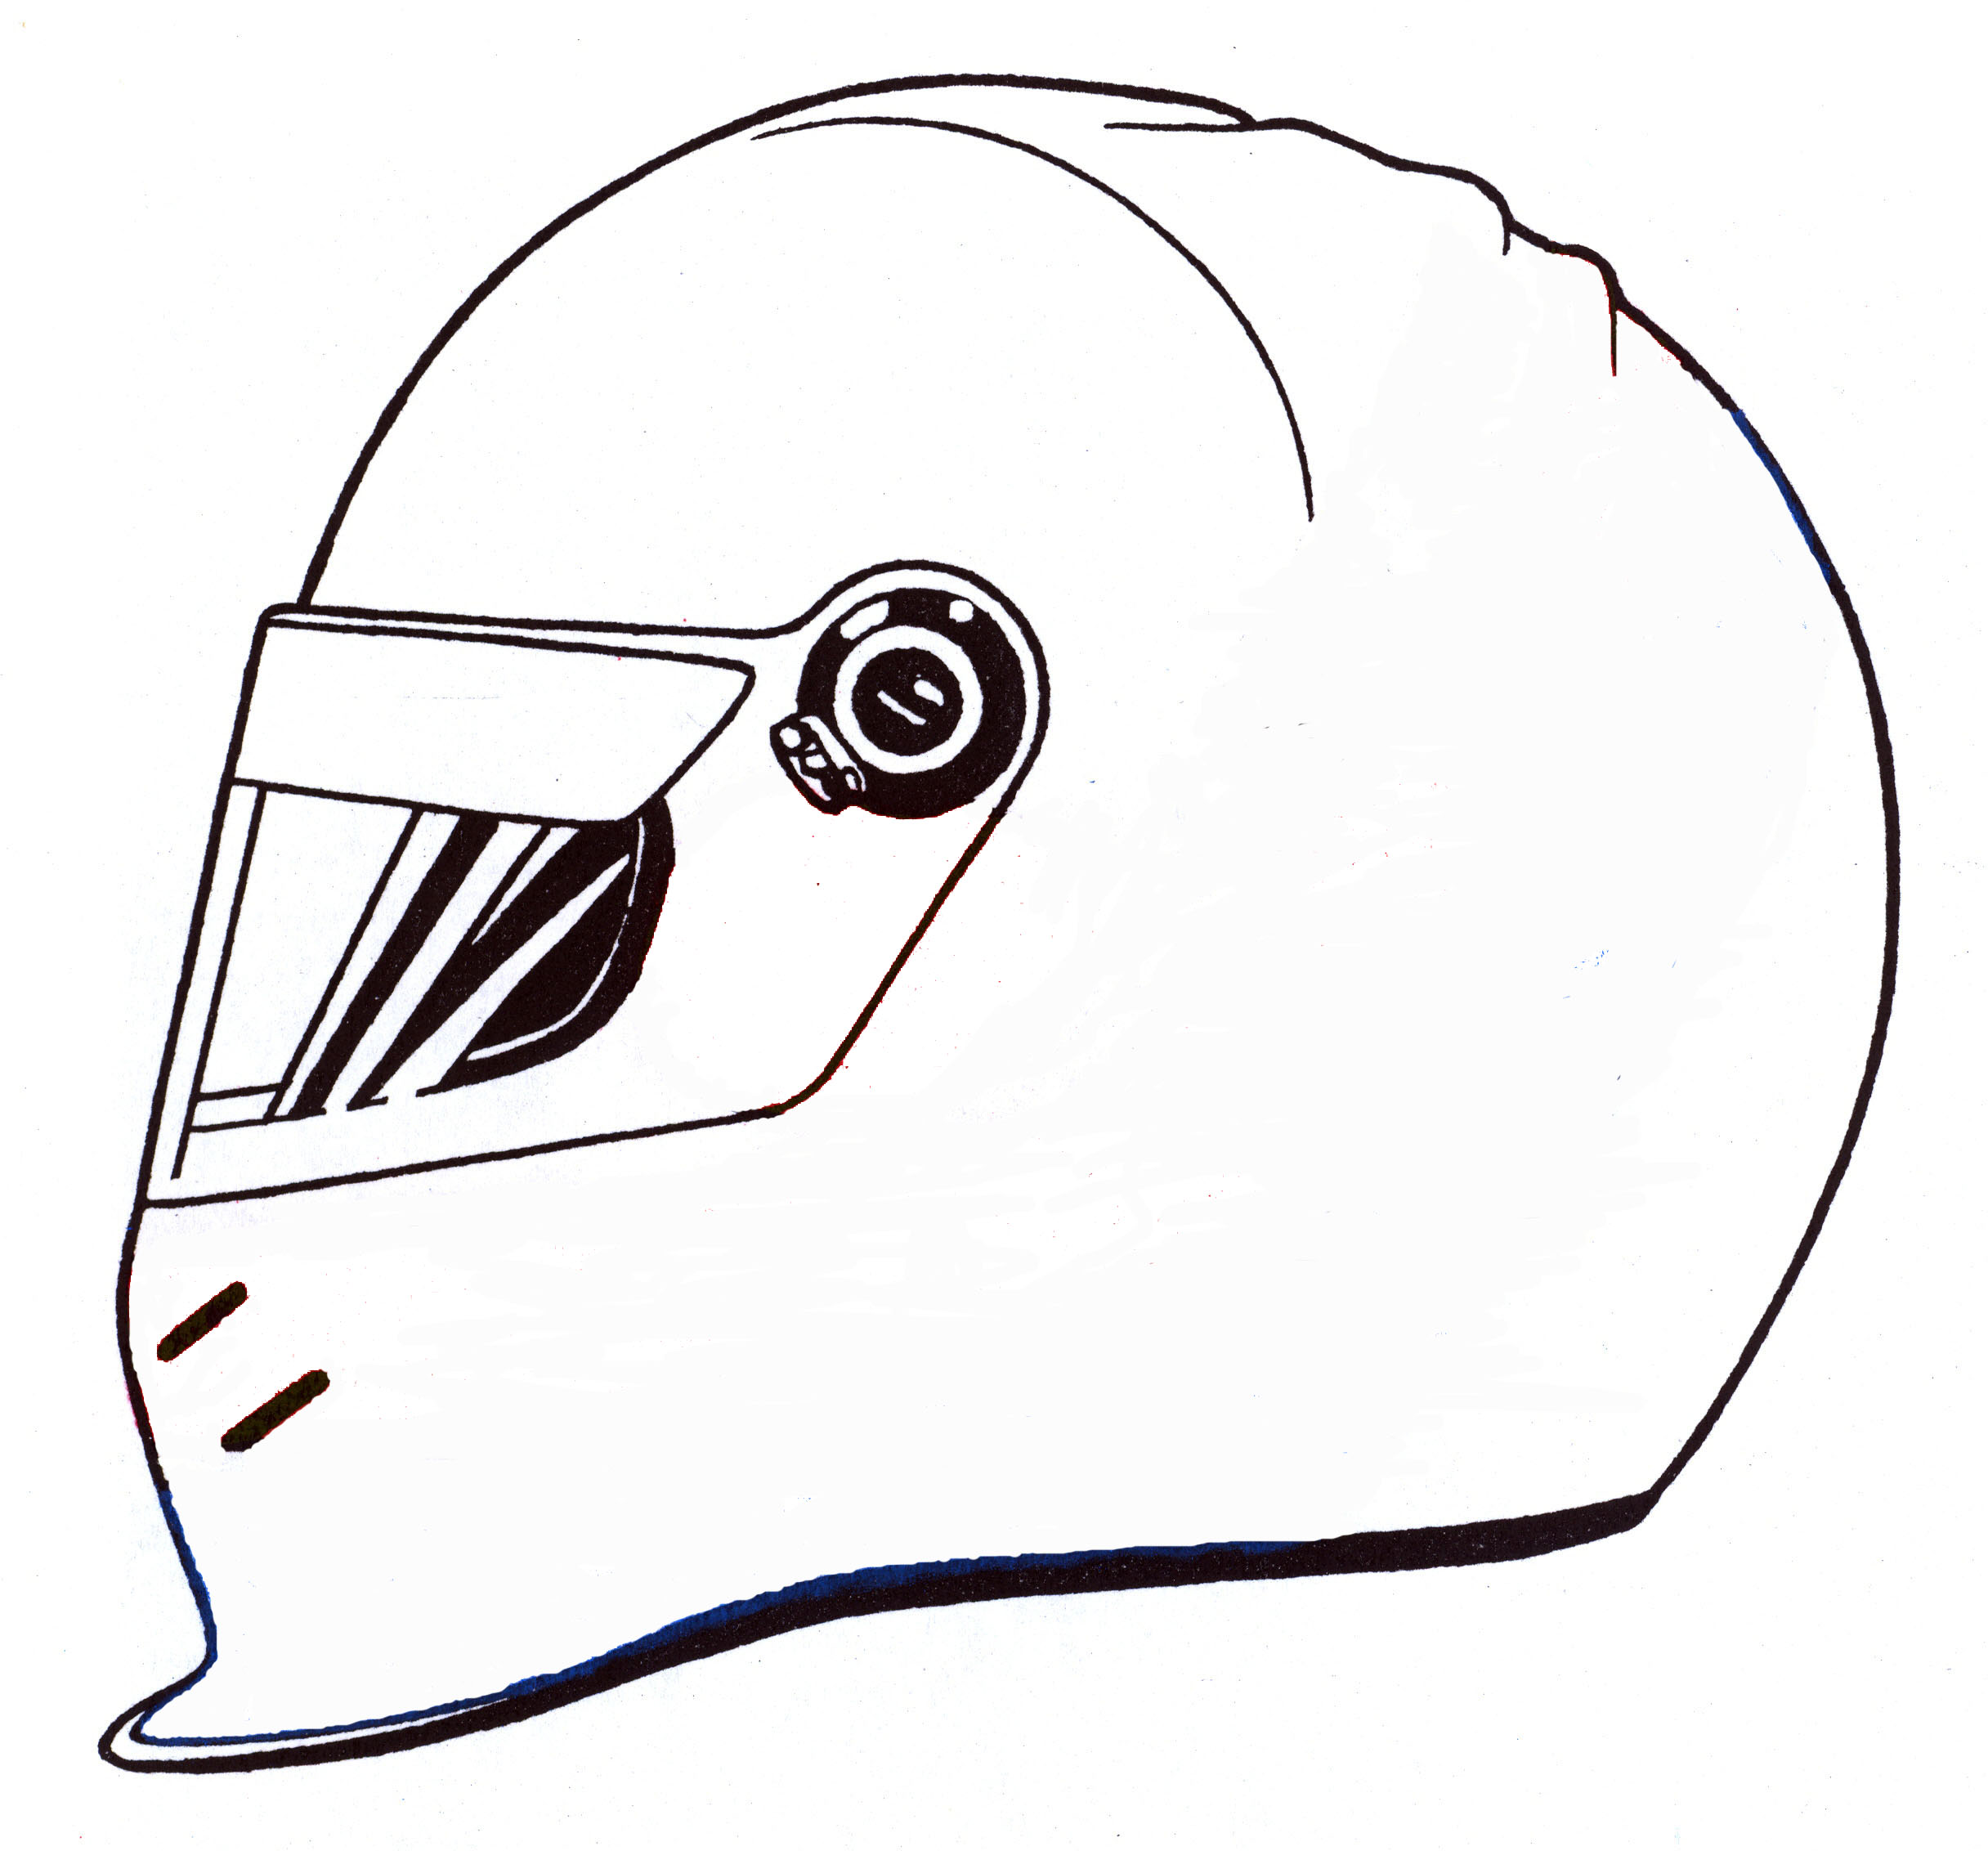 1759 Motorcycle free clipart.